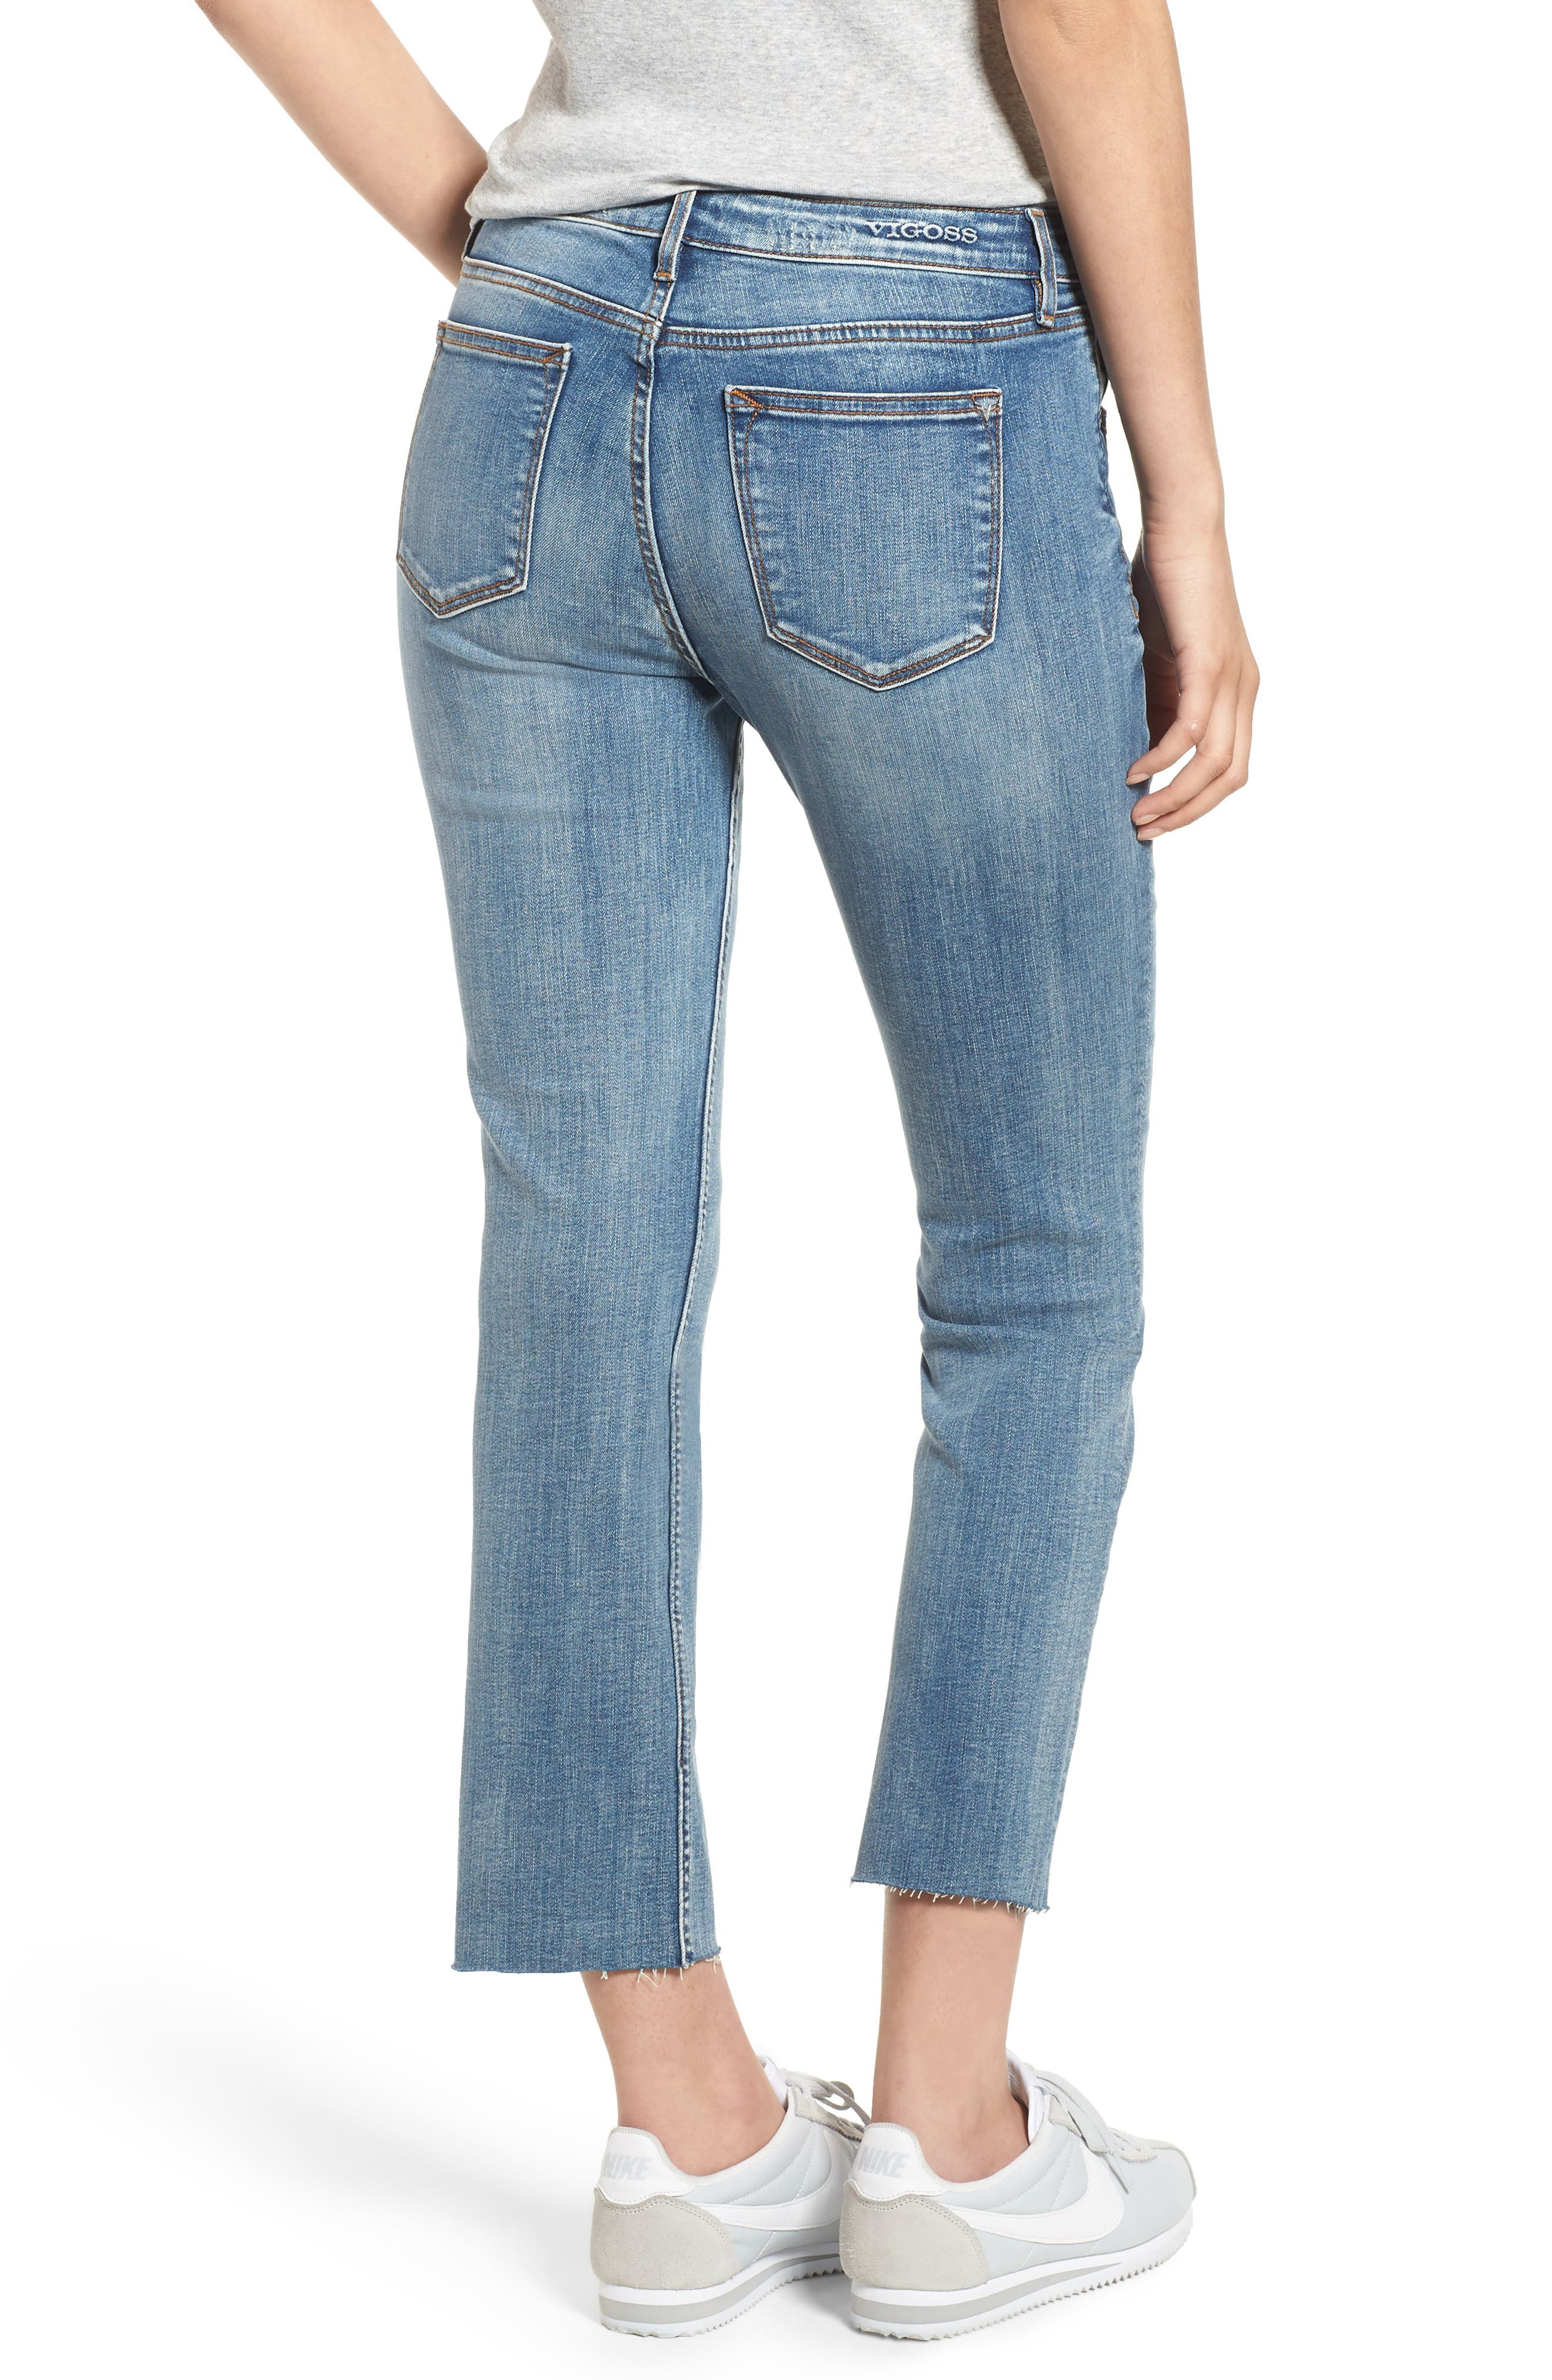 Jagger Crop Straight Leg Jeans,                             Alternate thumbnail 2, color,                             Med Wash